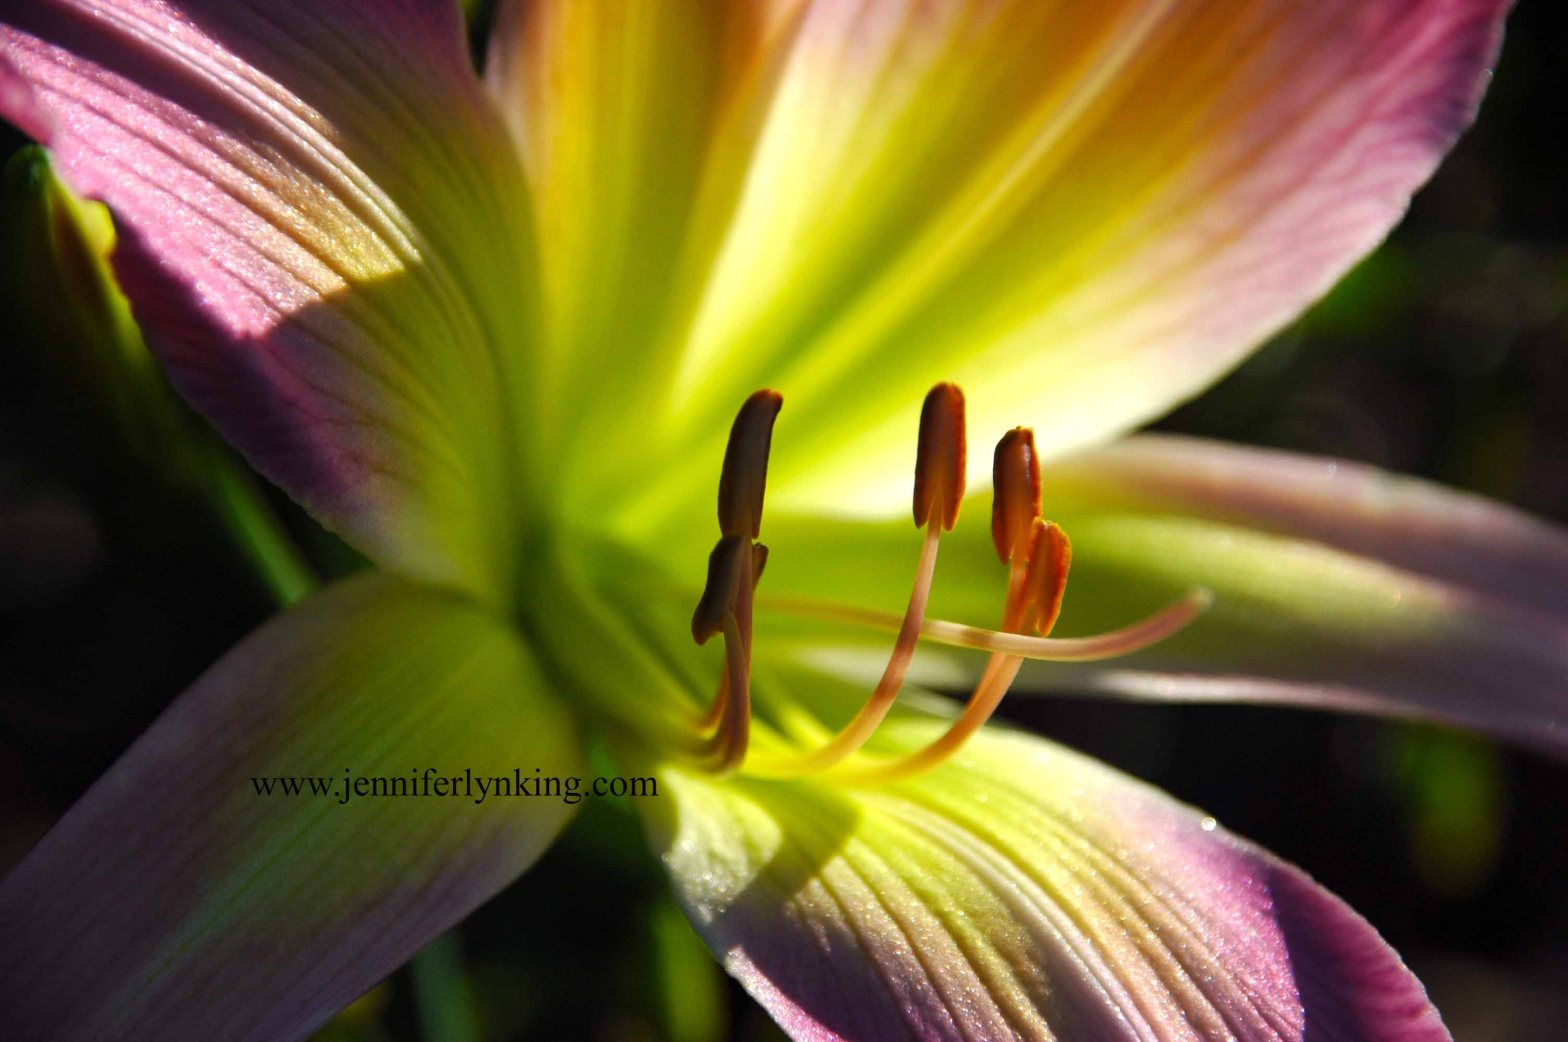 Garden daylily at first light